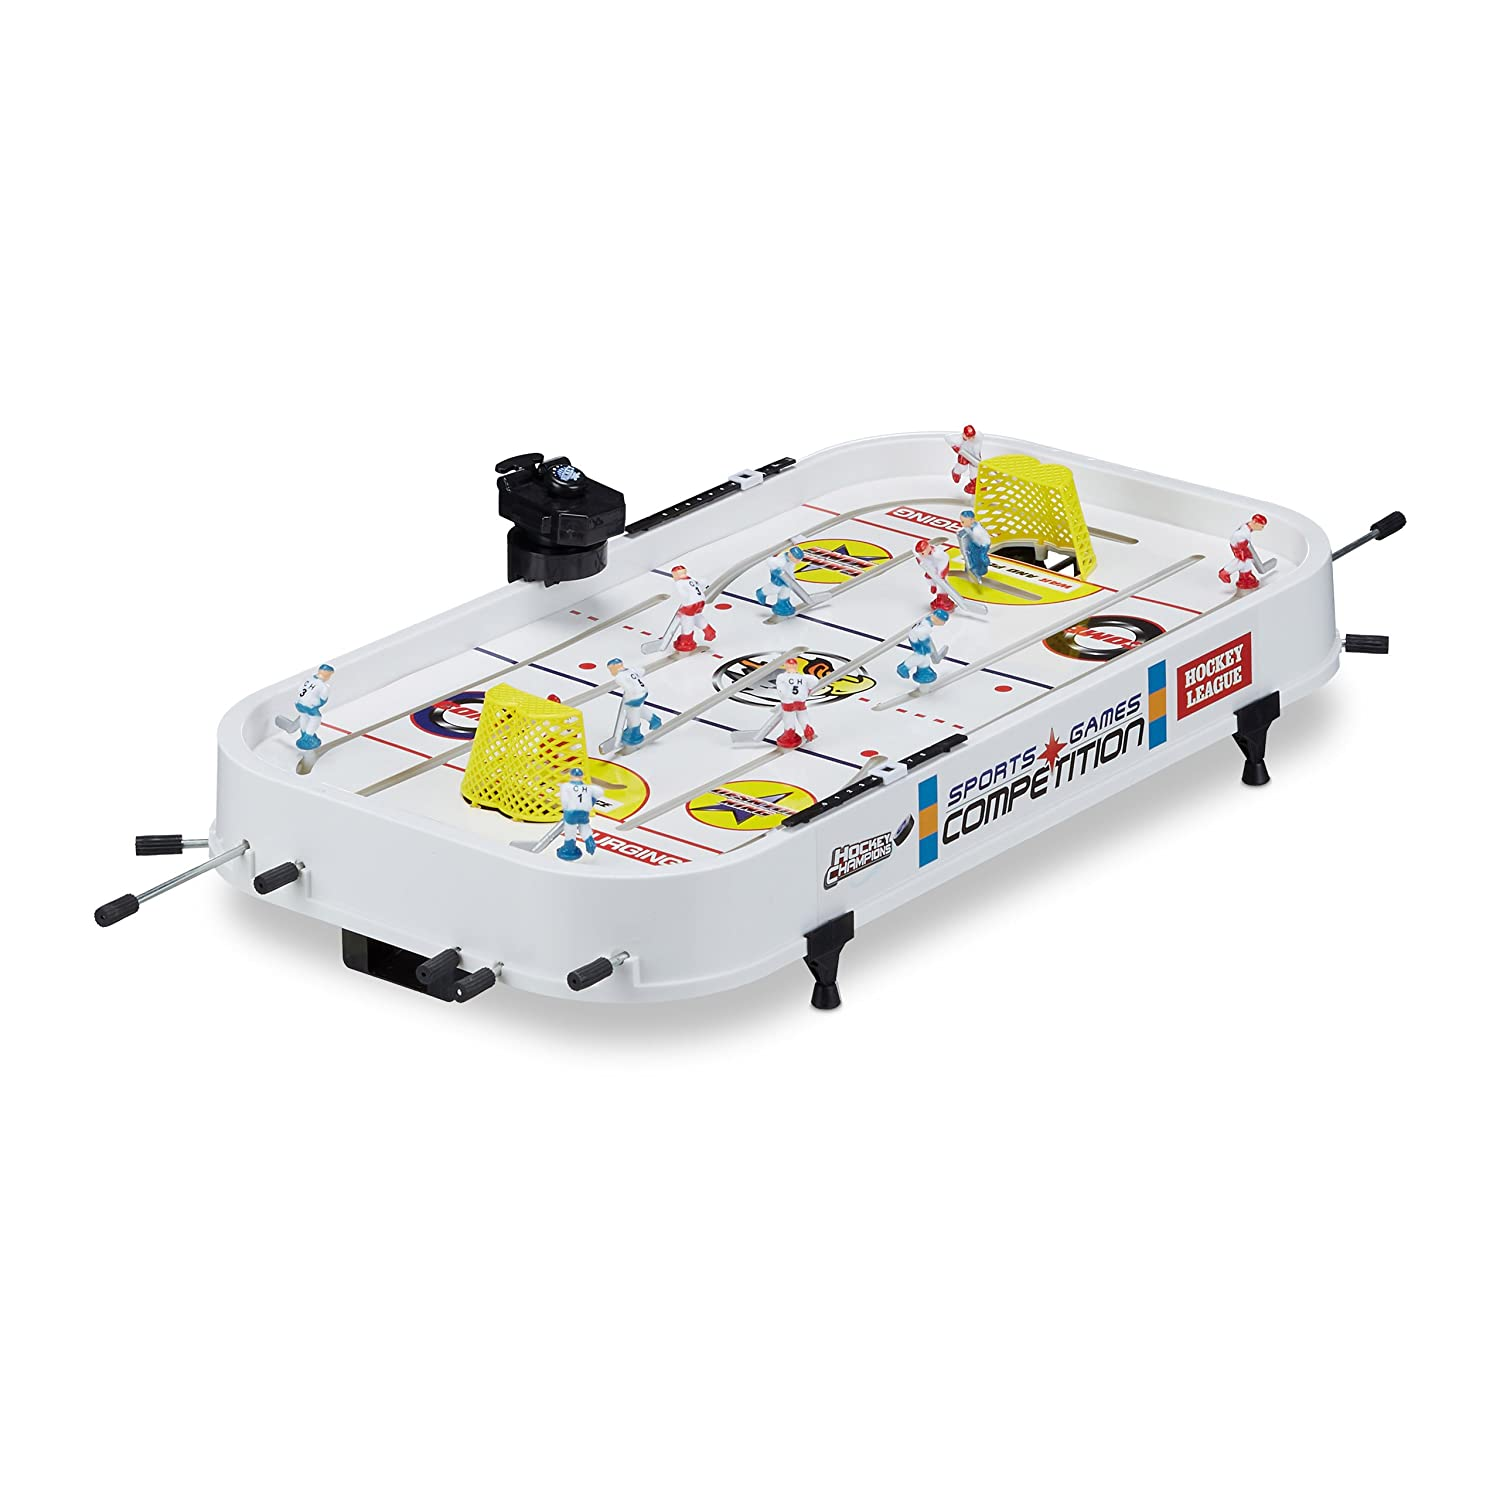 Relaxdays Mini Table Air Hockey mini hockey glace enfants jeu petite table adulte lxP: 60 x 31 cm, blanc 10021732